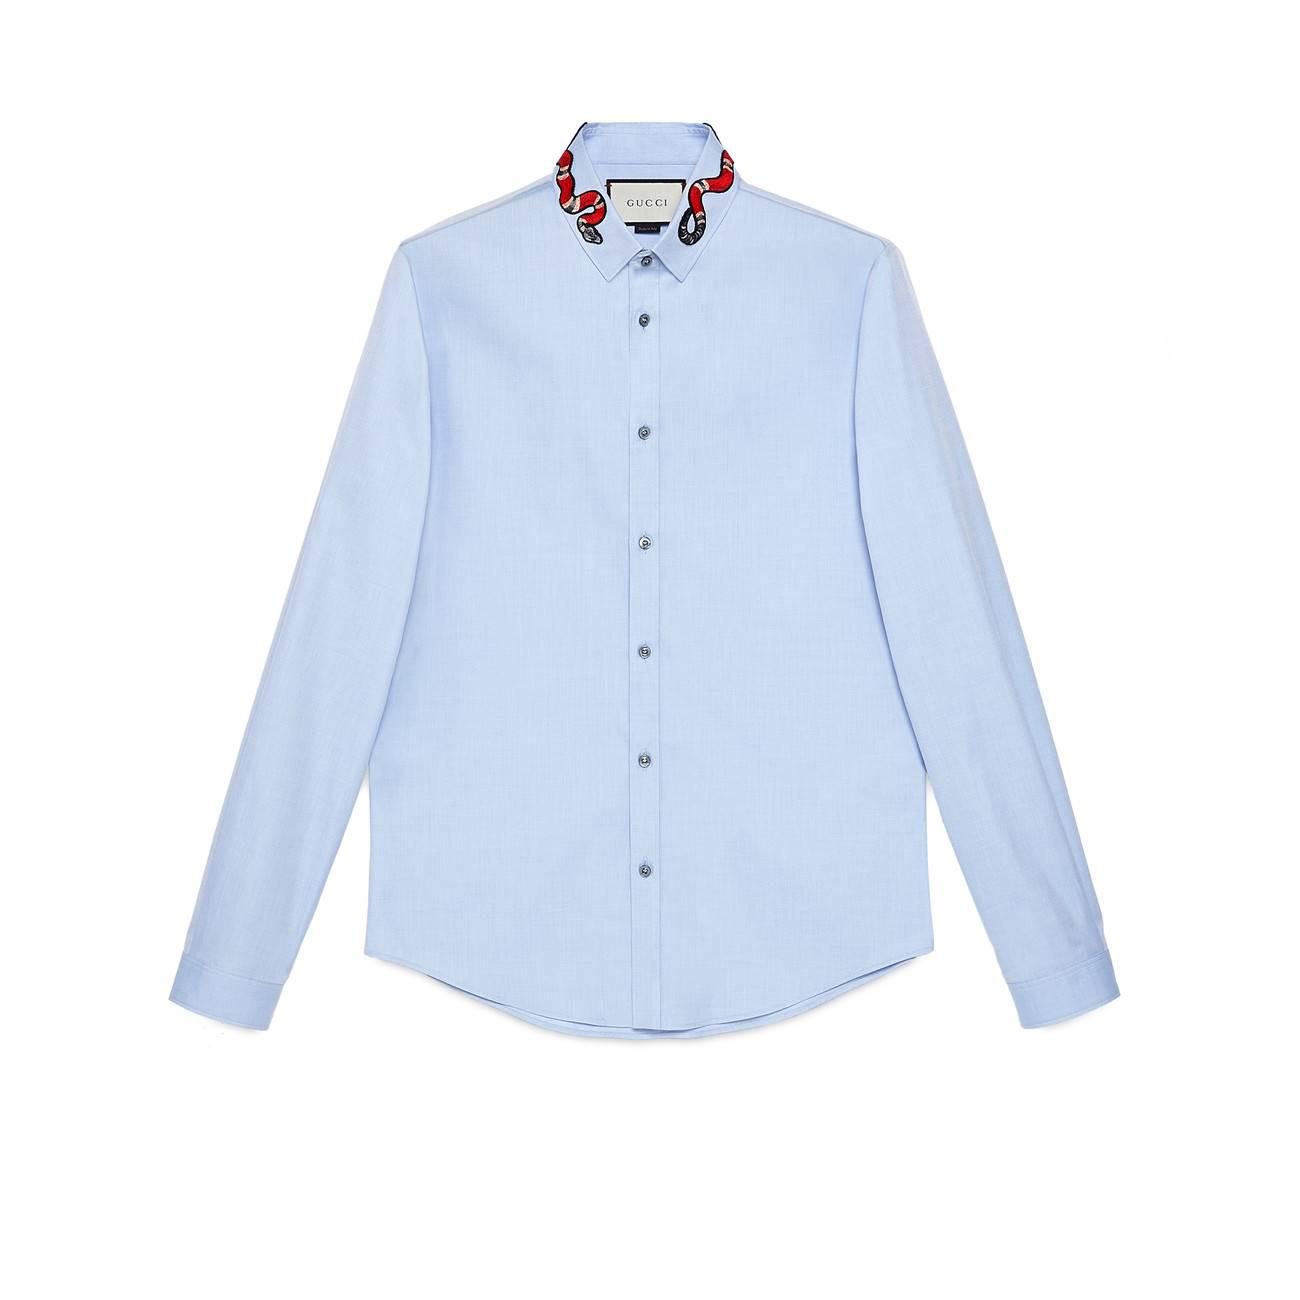 f4d083f811e Lyst - Gucci Oxford Duke Shirt With Kingsnake in Blue for Men - Save 4%